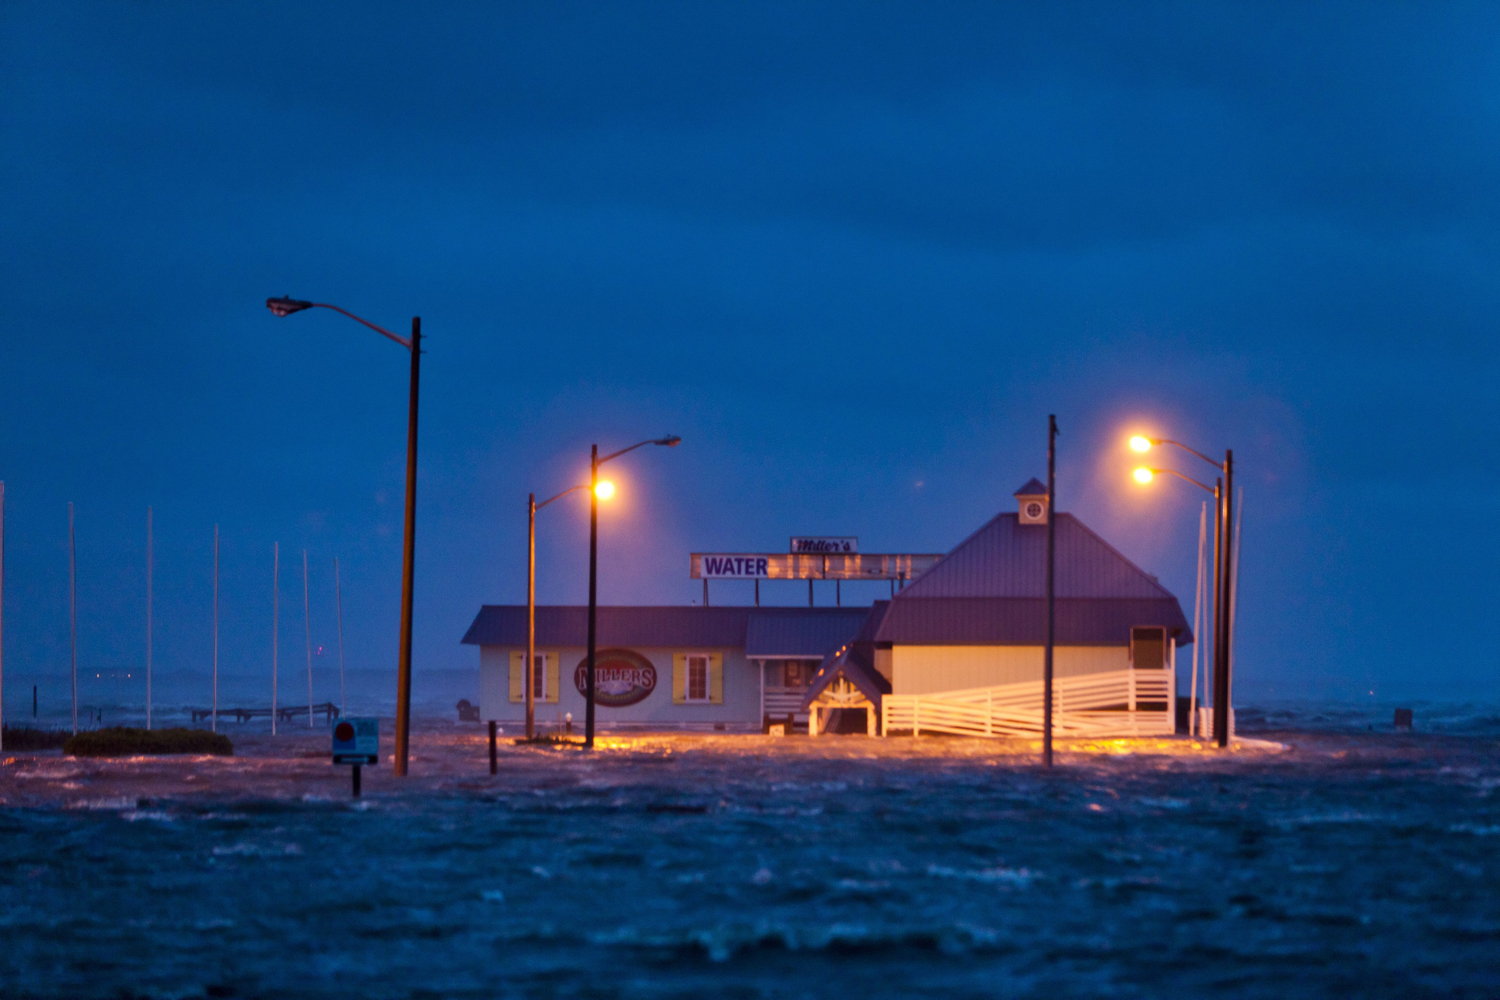 August 27, 2011, Nags Head, North Carolina. The Albemarle Sound floods Millers Restaurant shortly after Hurricane Irene barreled through the Outer Banks.